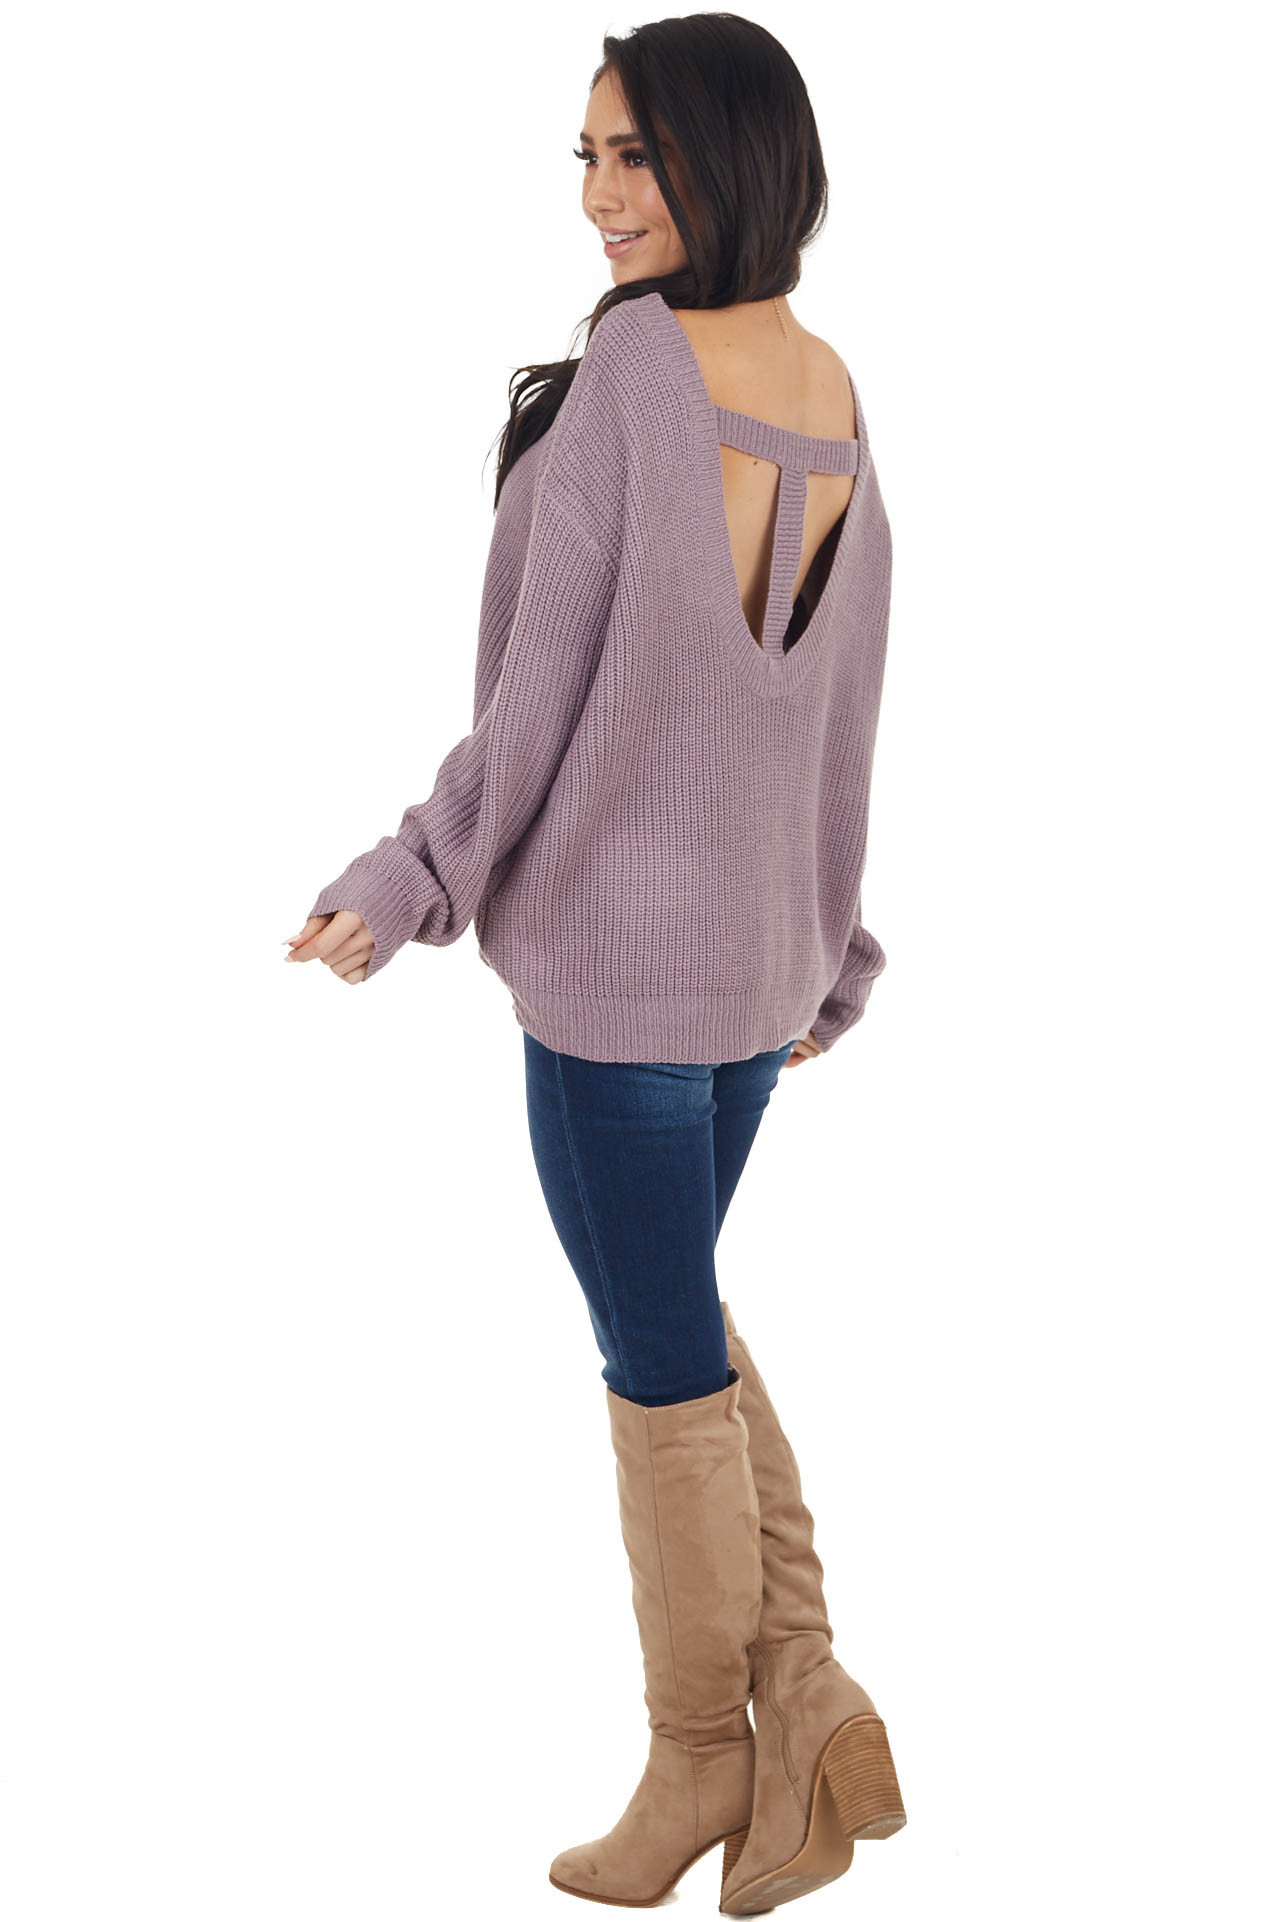 Lavender Boat Neckline Knit Sweater with Back Cutout Detail